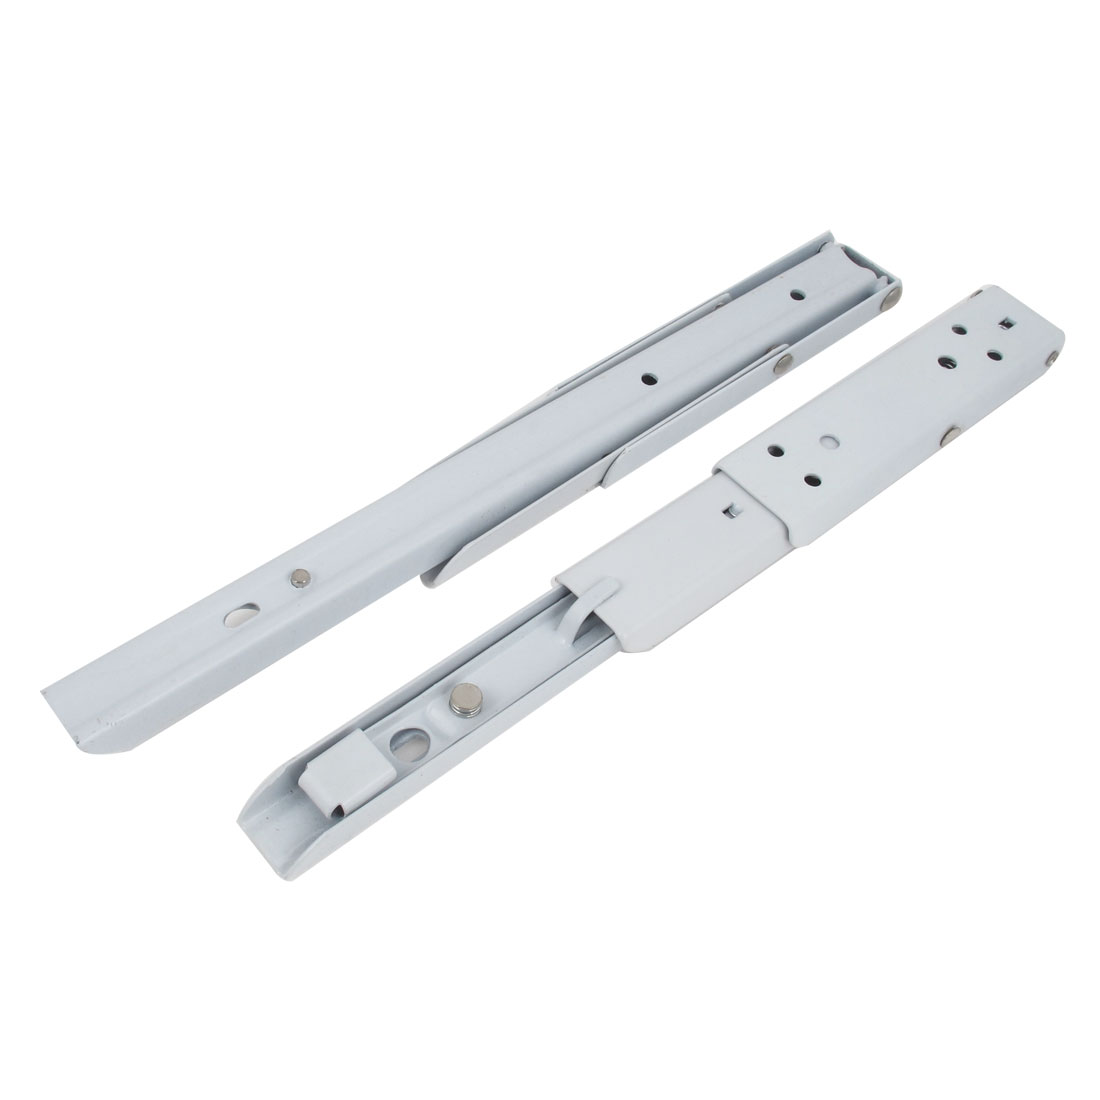 2pcs White Finish TV Mounts Counter Extensions 90 Degree Folding Triangle Brackets